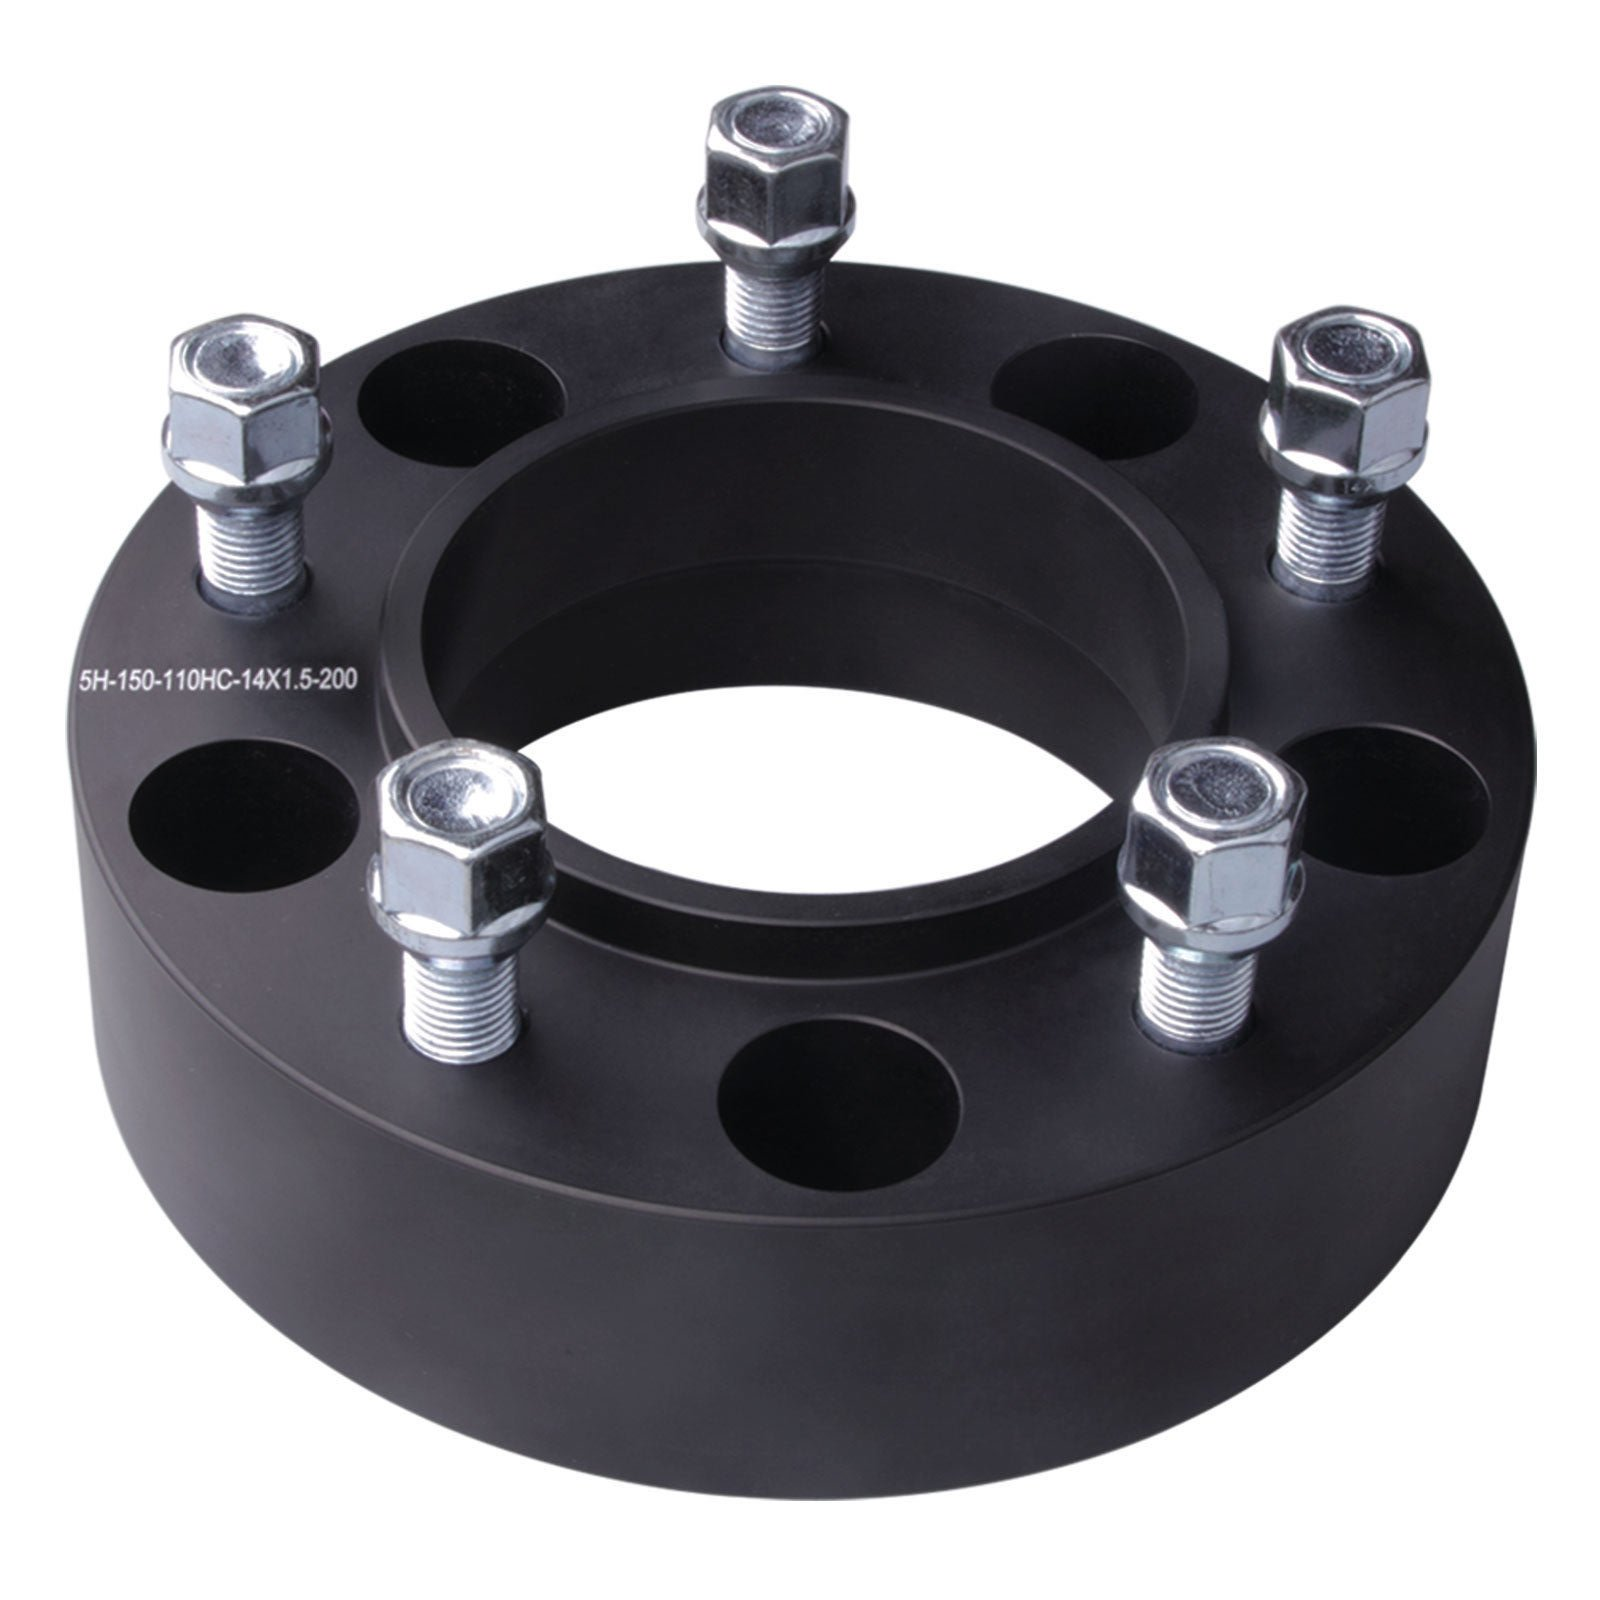 DCUAUTO 4pc 2007-2017 Toyota Tundra 5x150 Hubcentric Wheel Spacers Adapters 2 Inch with 14x1.5 Studs by DCUAUTO (Image #6)